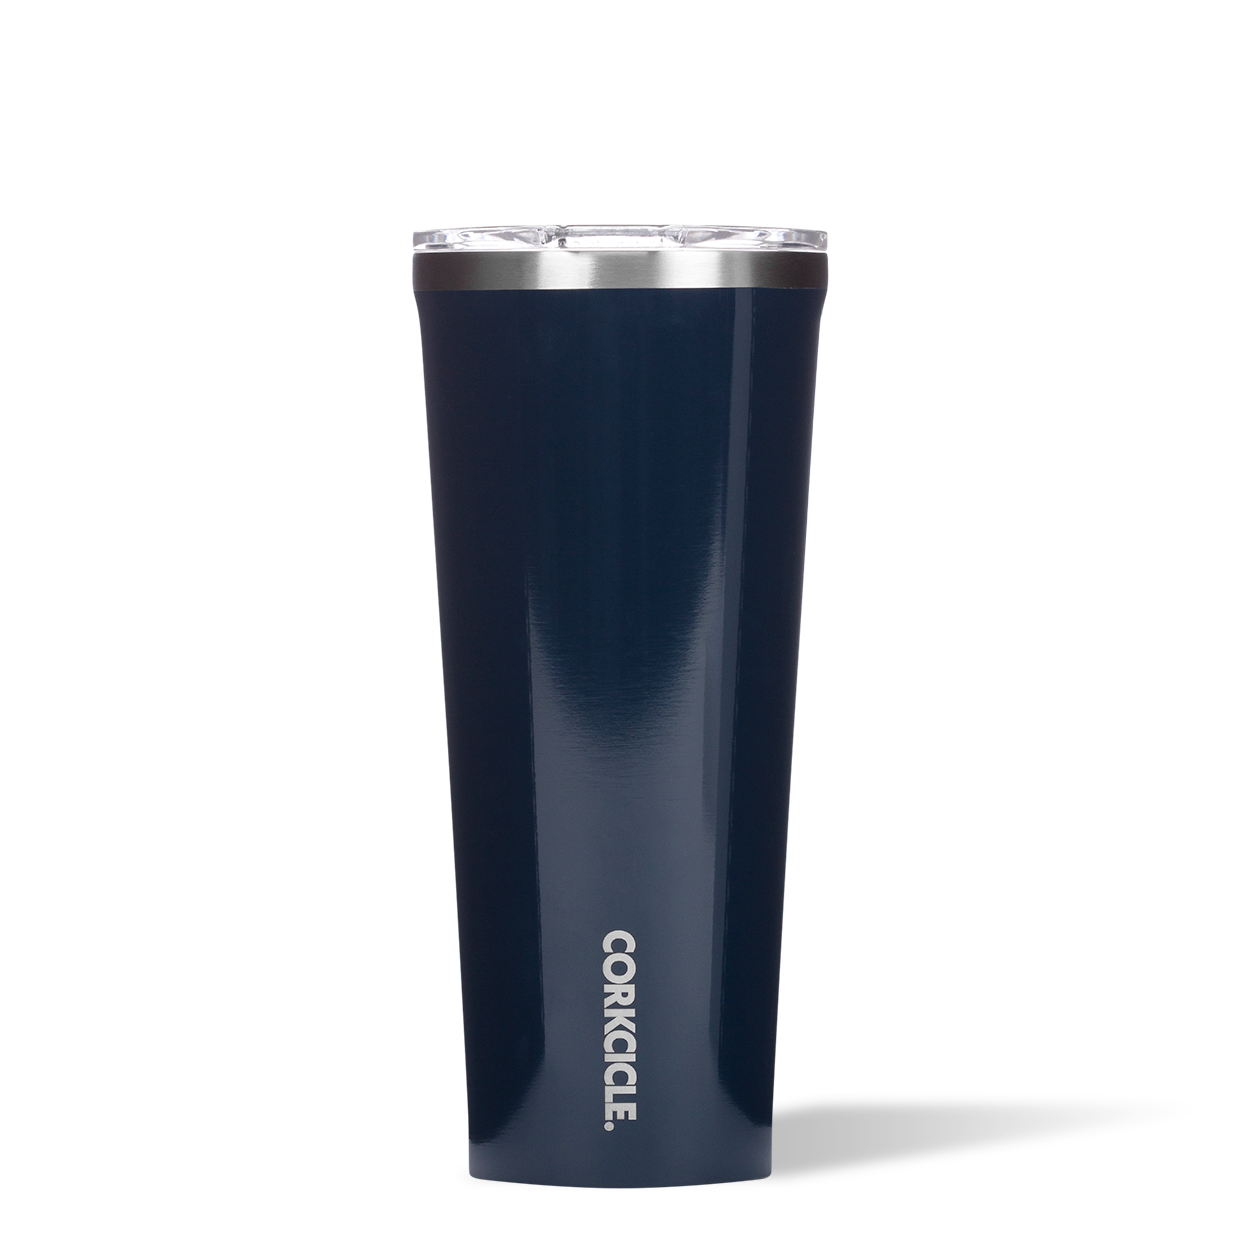 729a7c988a8 Branded Corkcicle 24oz Tumbler - CKCL-T24 | Ad Specialty Products